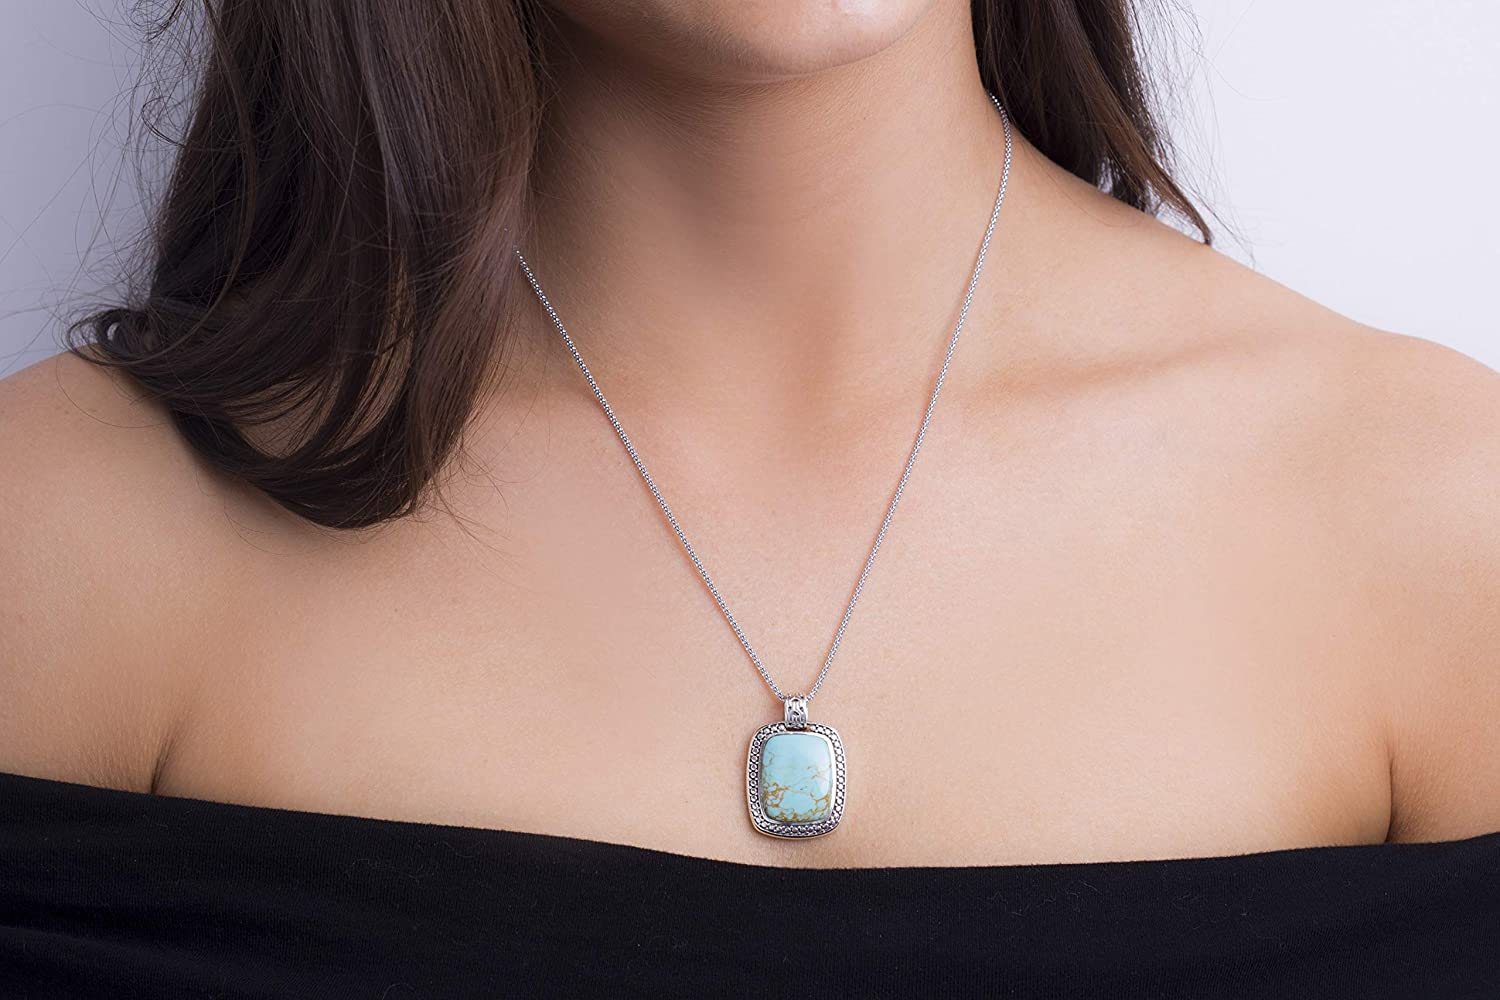 Willowbird Oxidized Sterling Silver Simulated Turquoise Beaded Rectangle Pendant Necklace